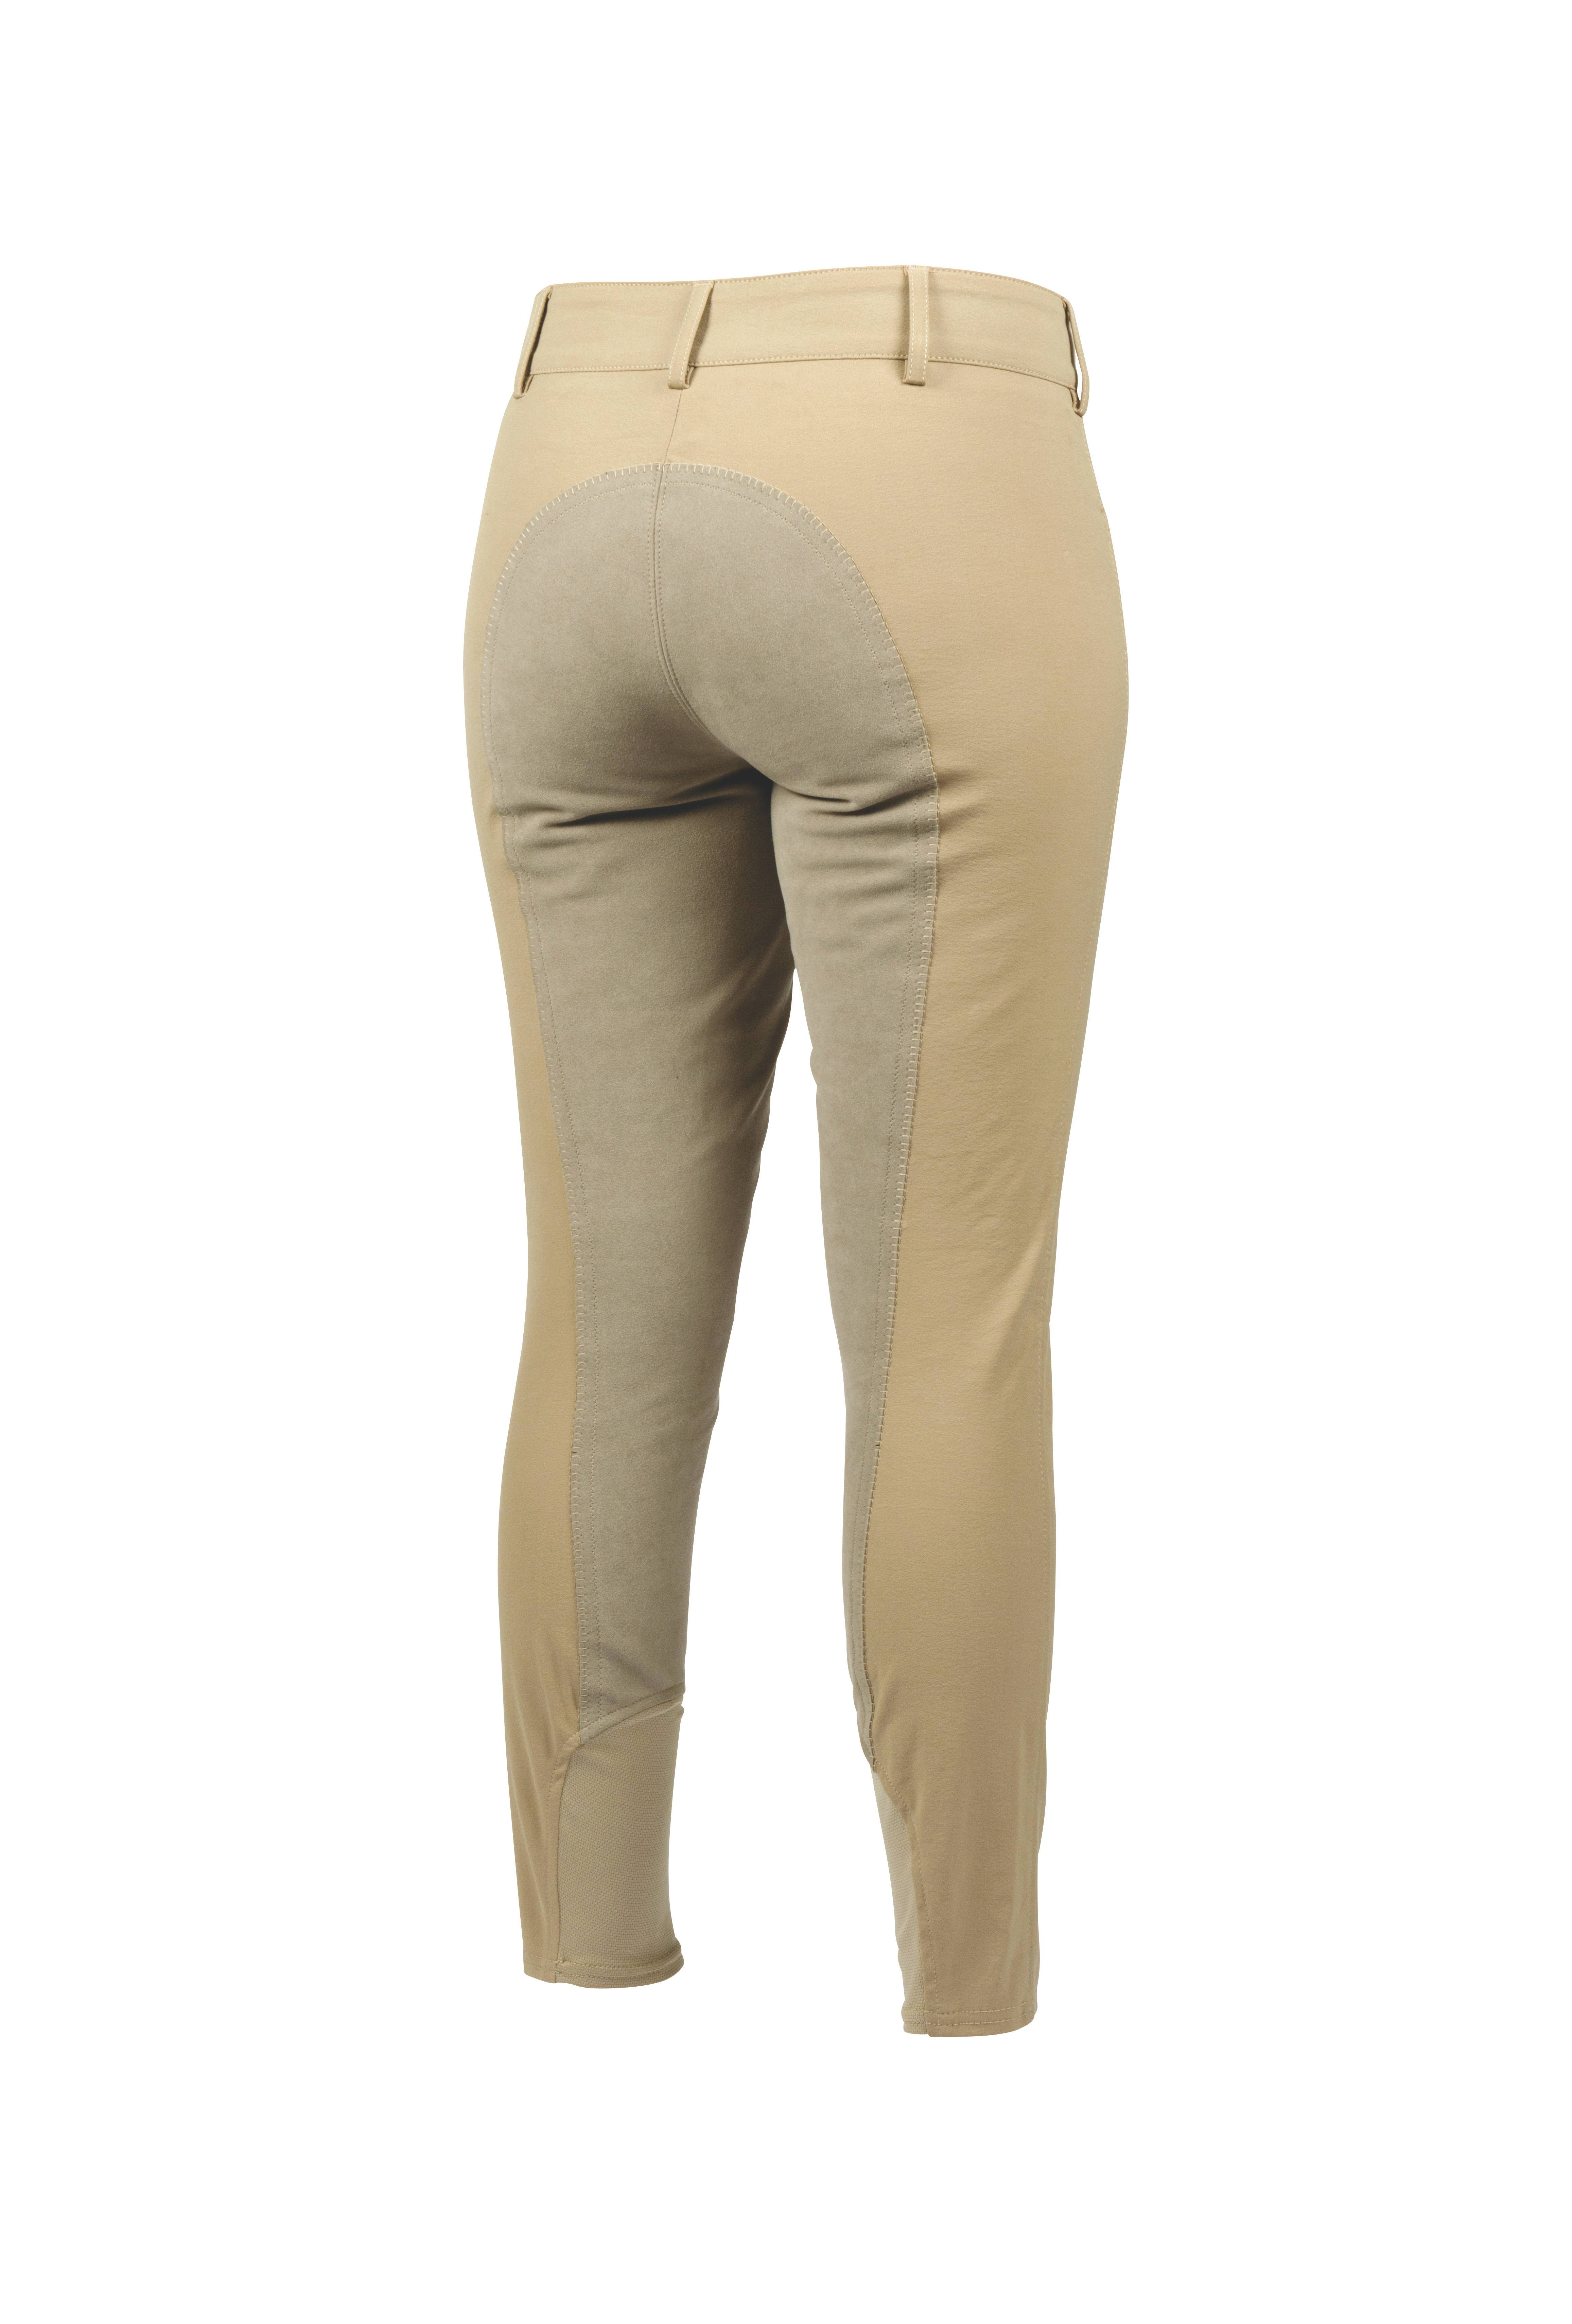 Shires Providence Wide Waist Breeches - Ladies